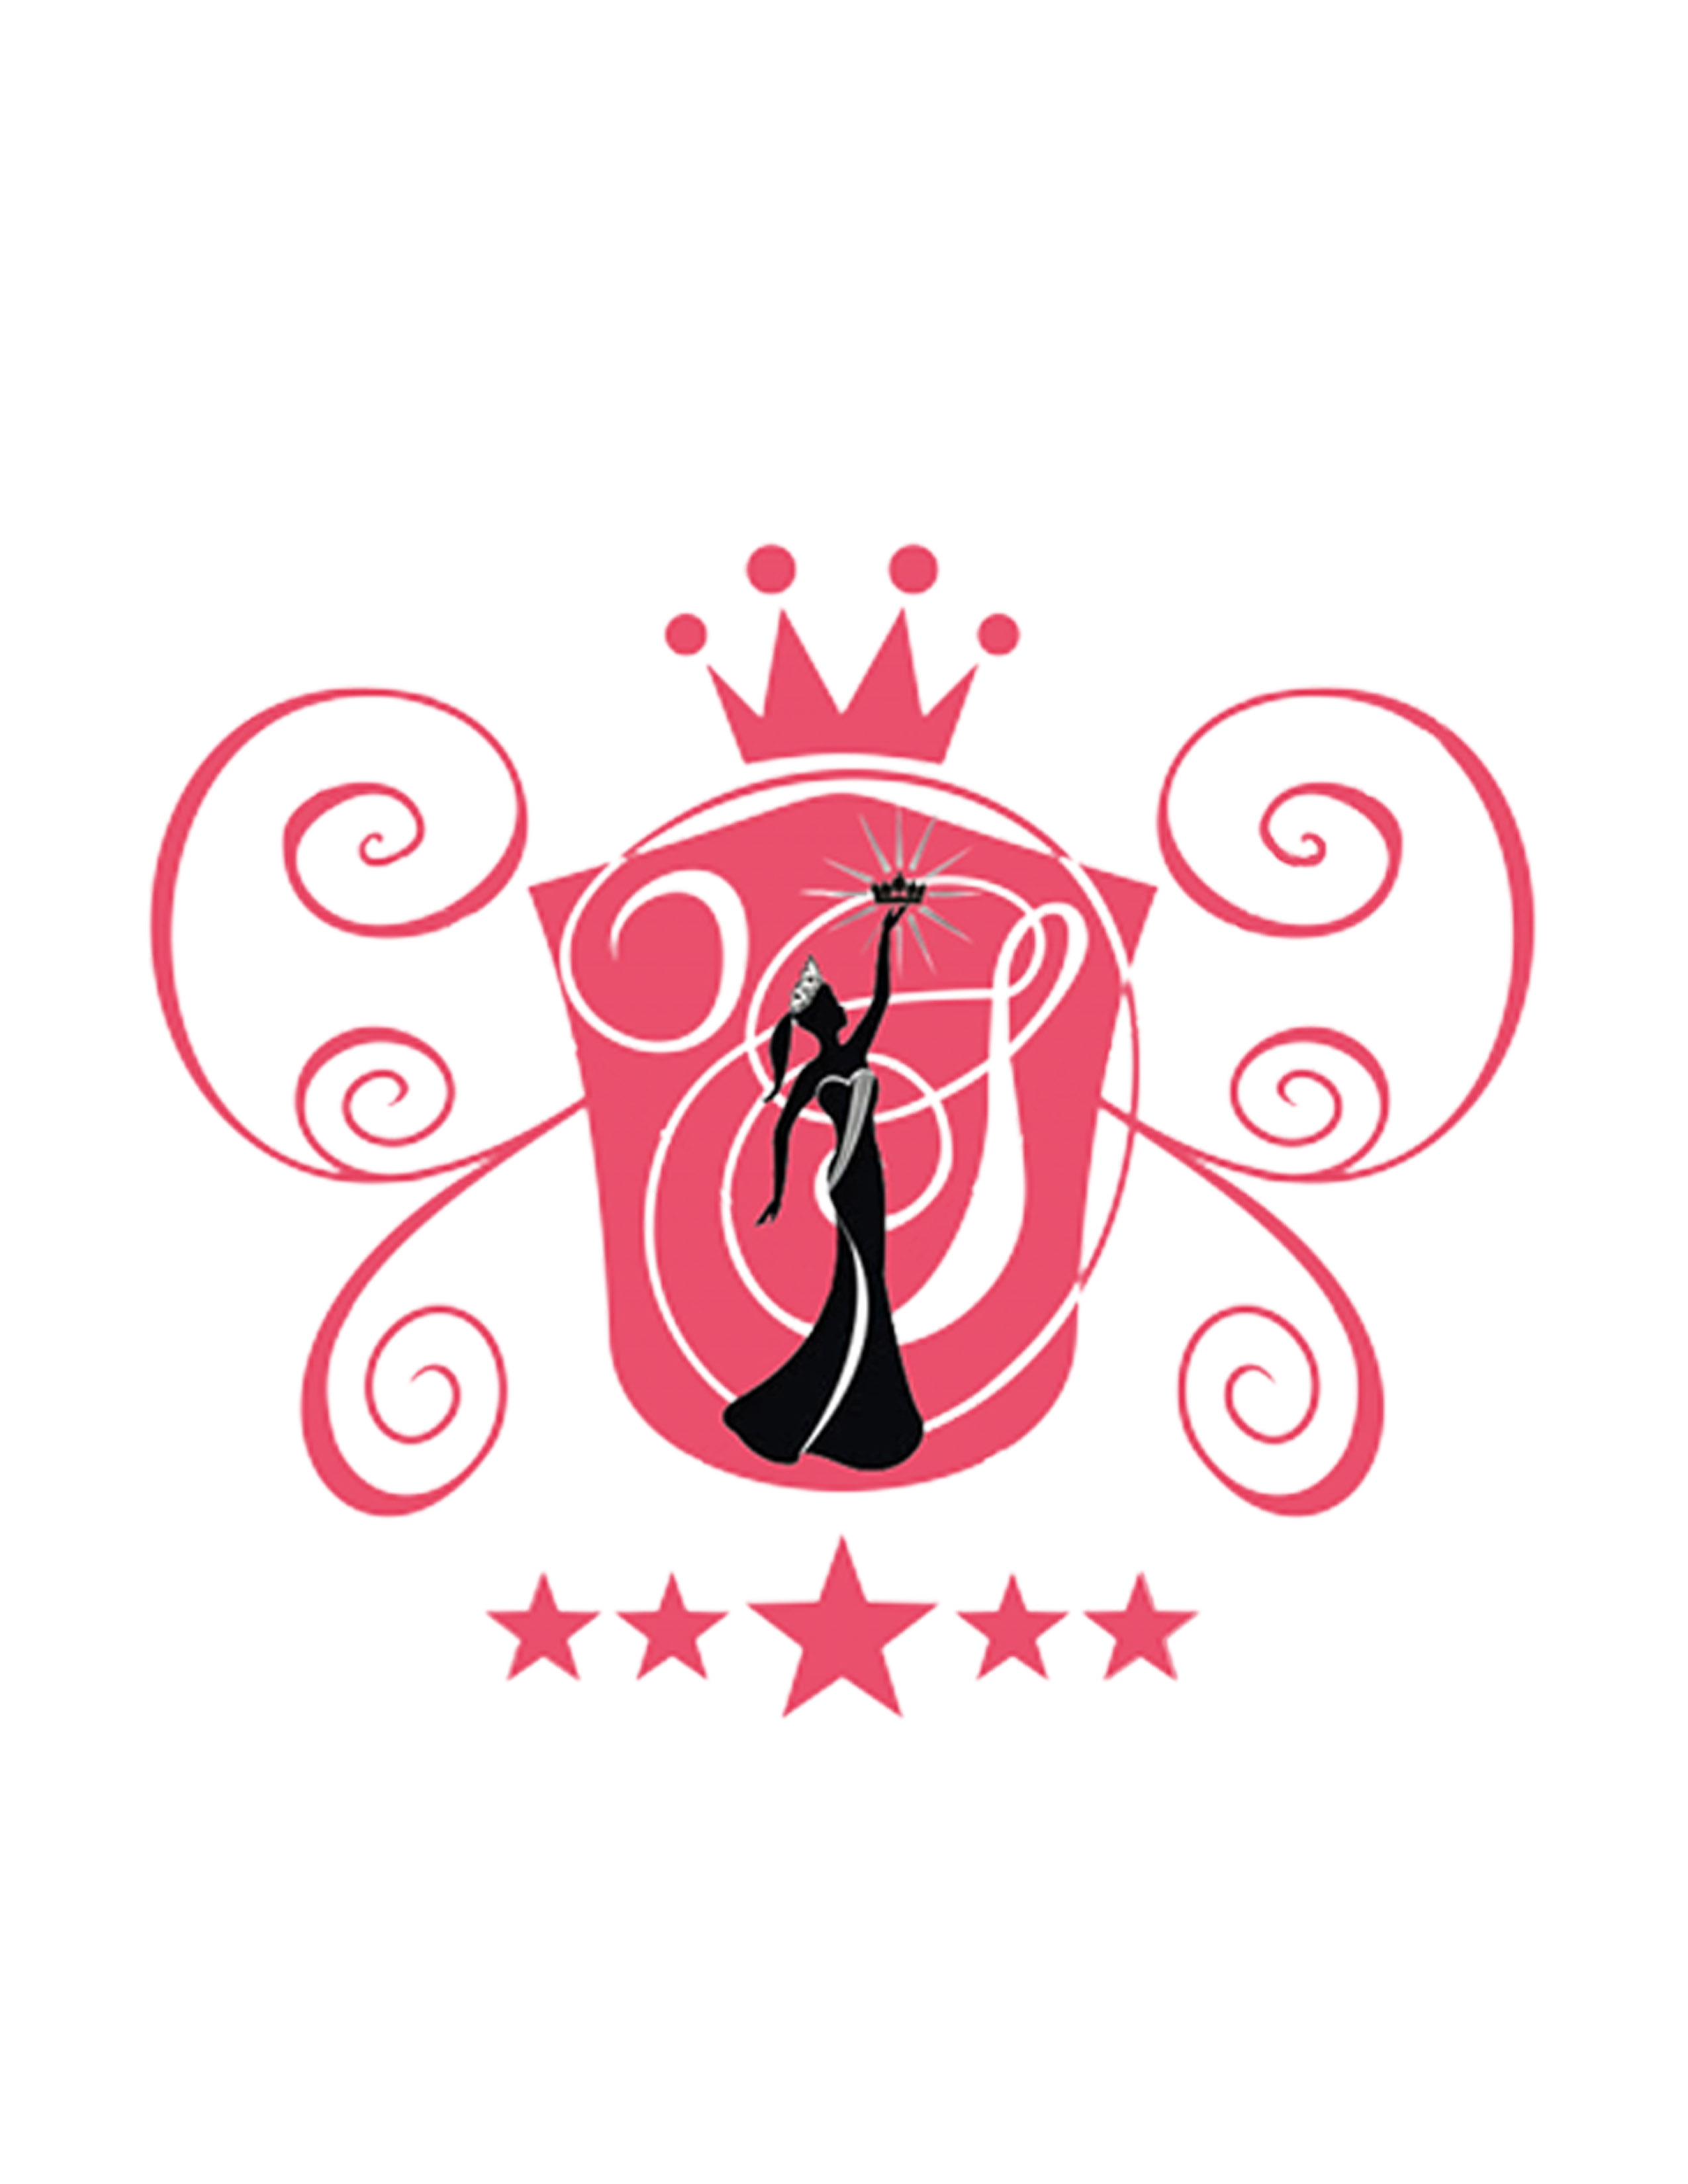 Beauty pageant logo design - photo#43